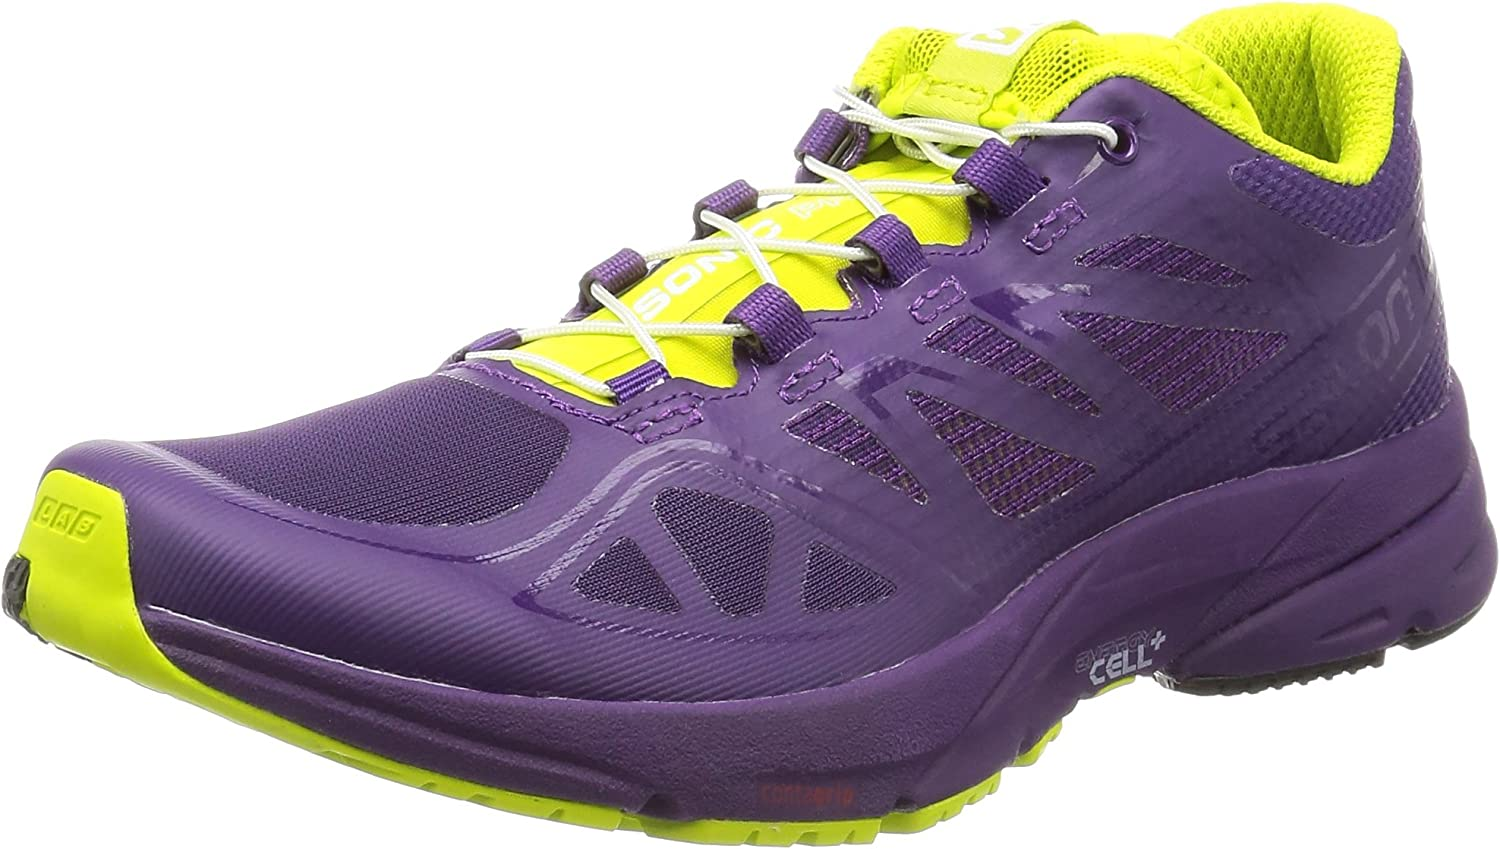 Salomon L37917300, Zapatillas de Trail Running para Mujer, Morado (Cosmic Purple/Cosmic Purple/Gecko G), 38 2/3 EU: Amazon.es: Zapatos y complementos